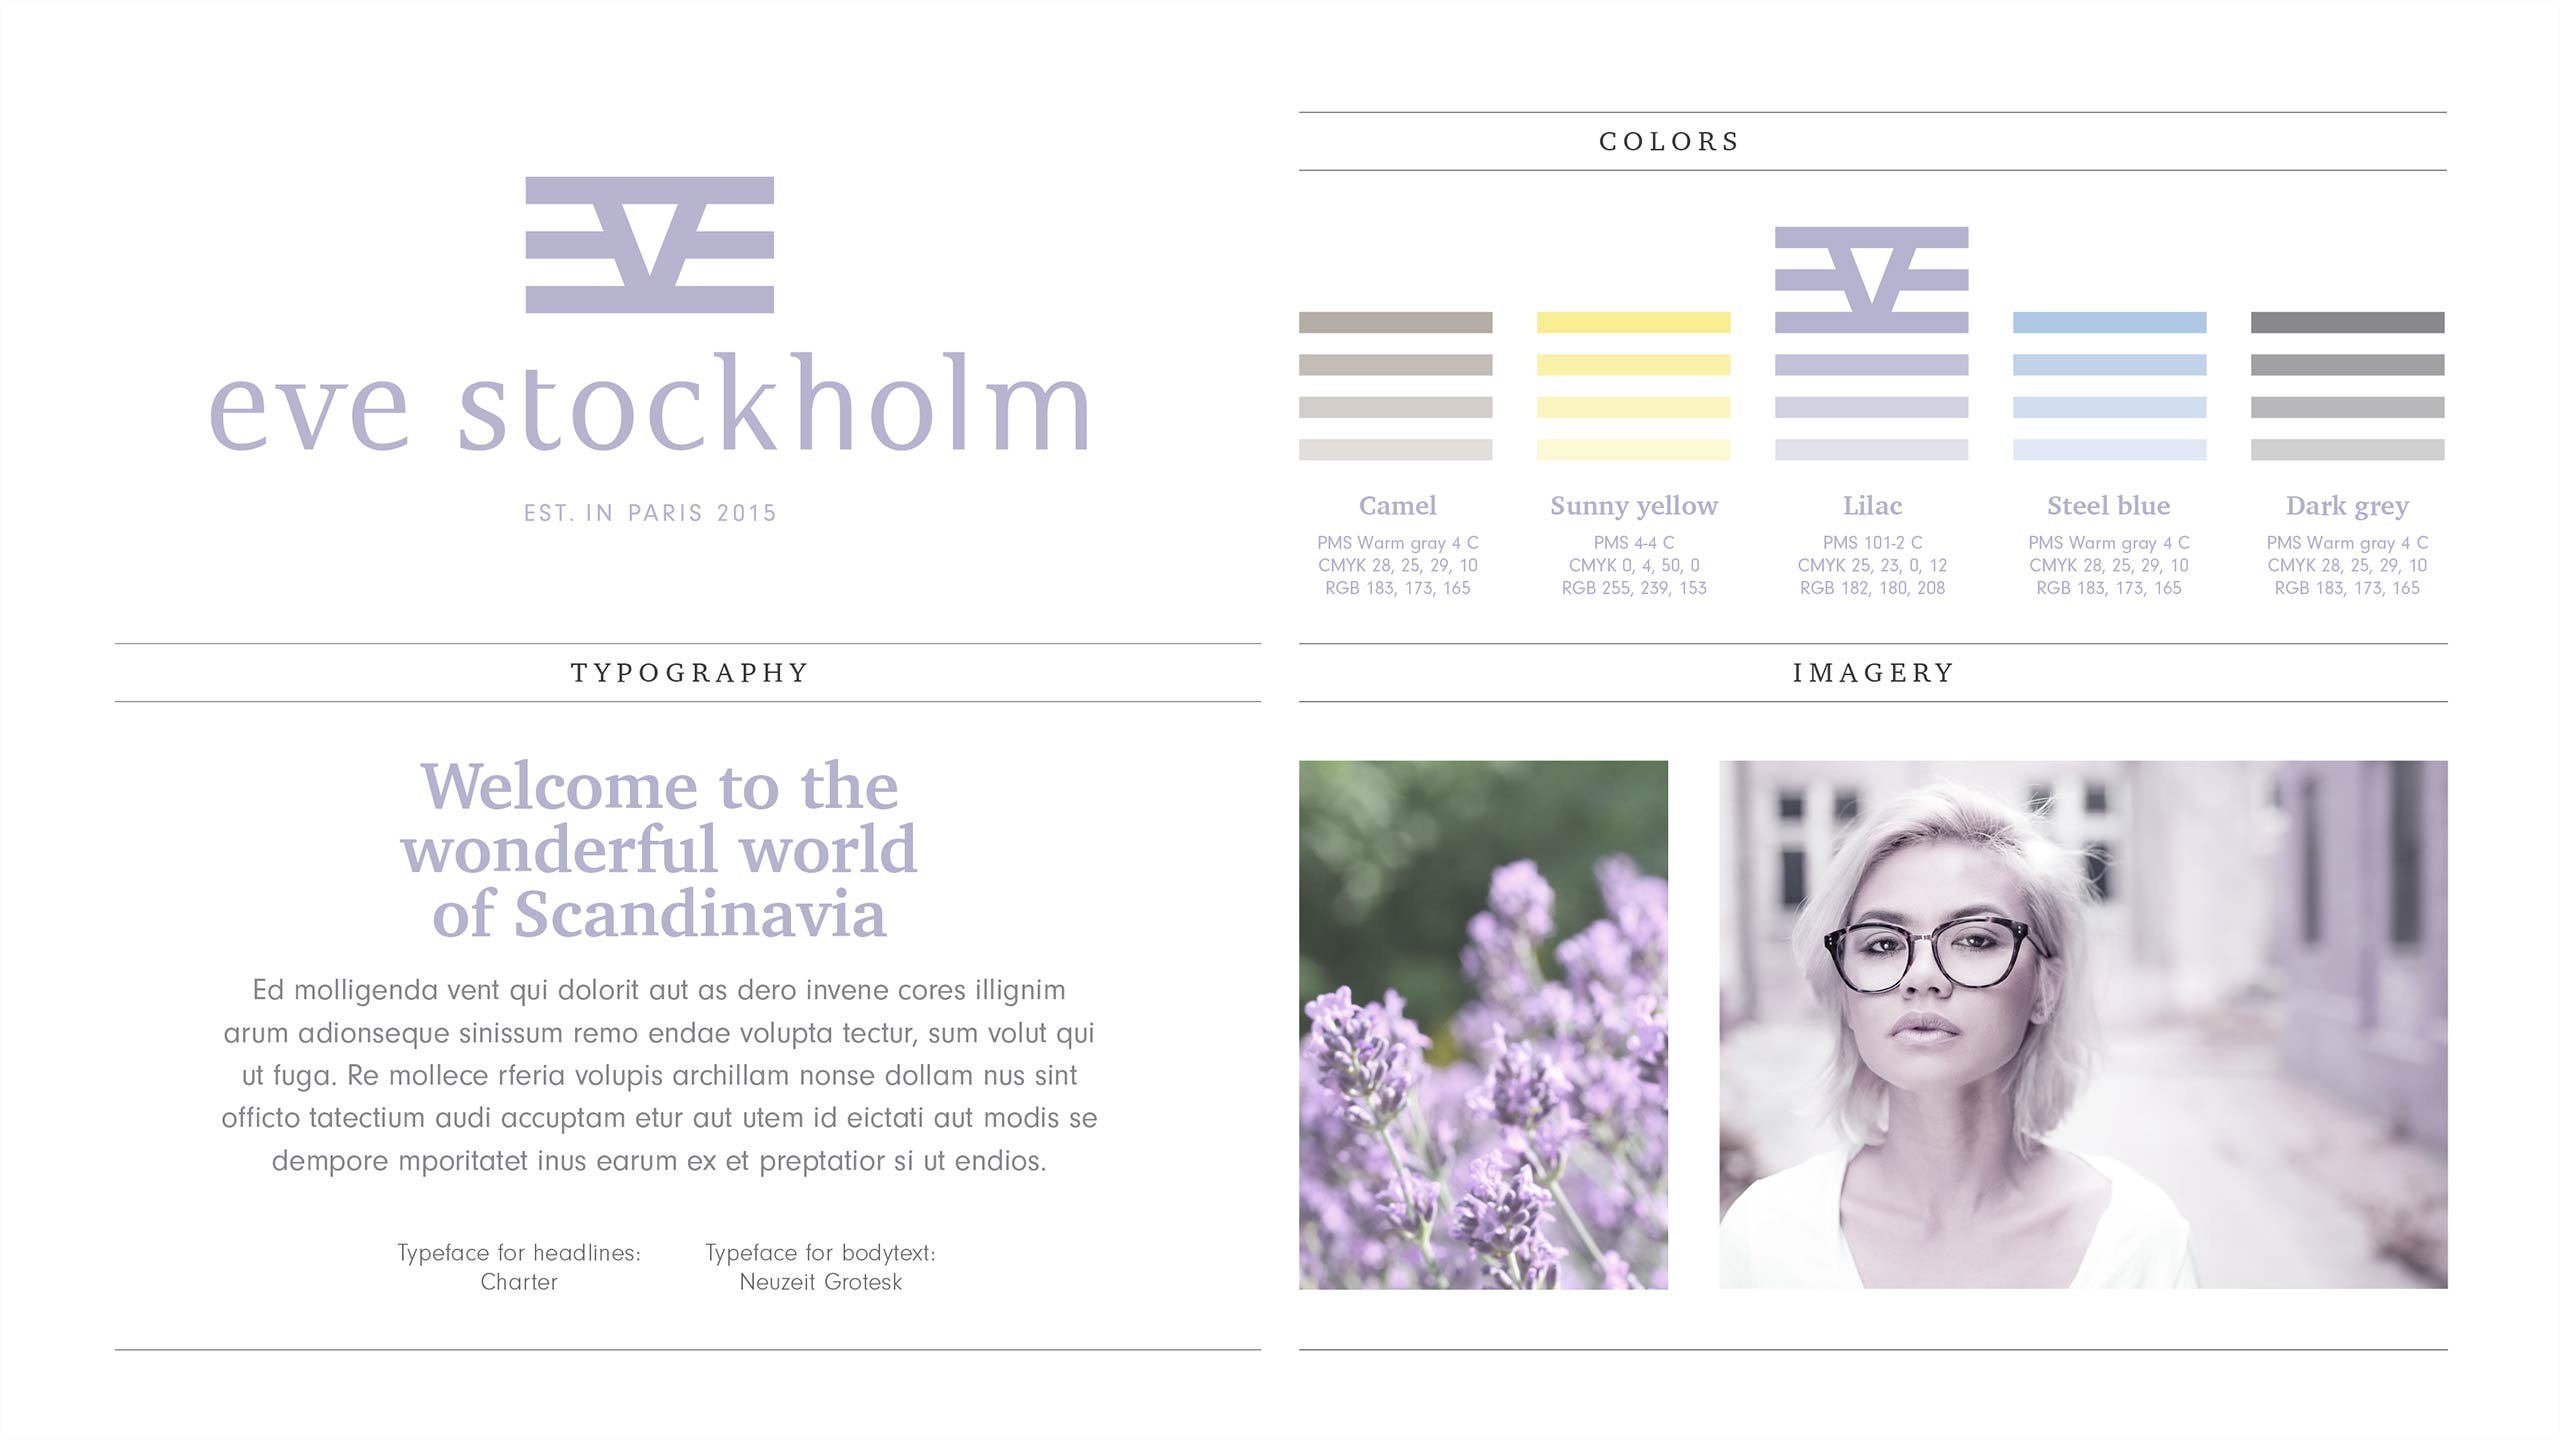 Visual identity overview for Eve Stockholm